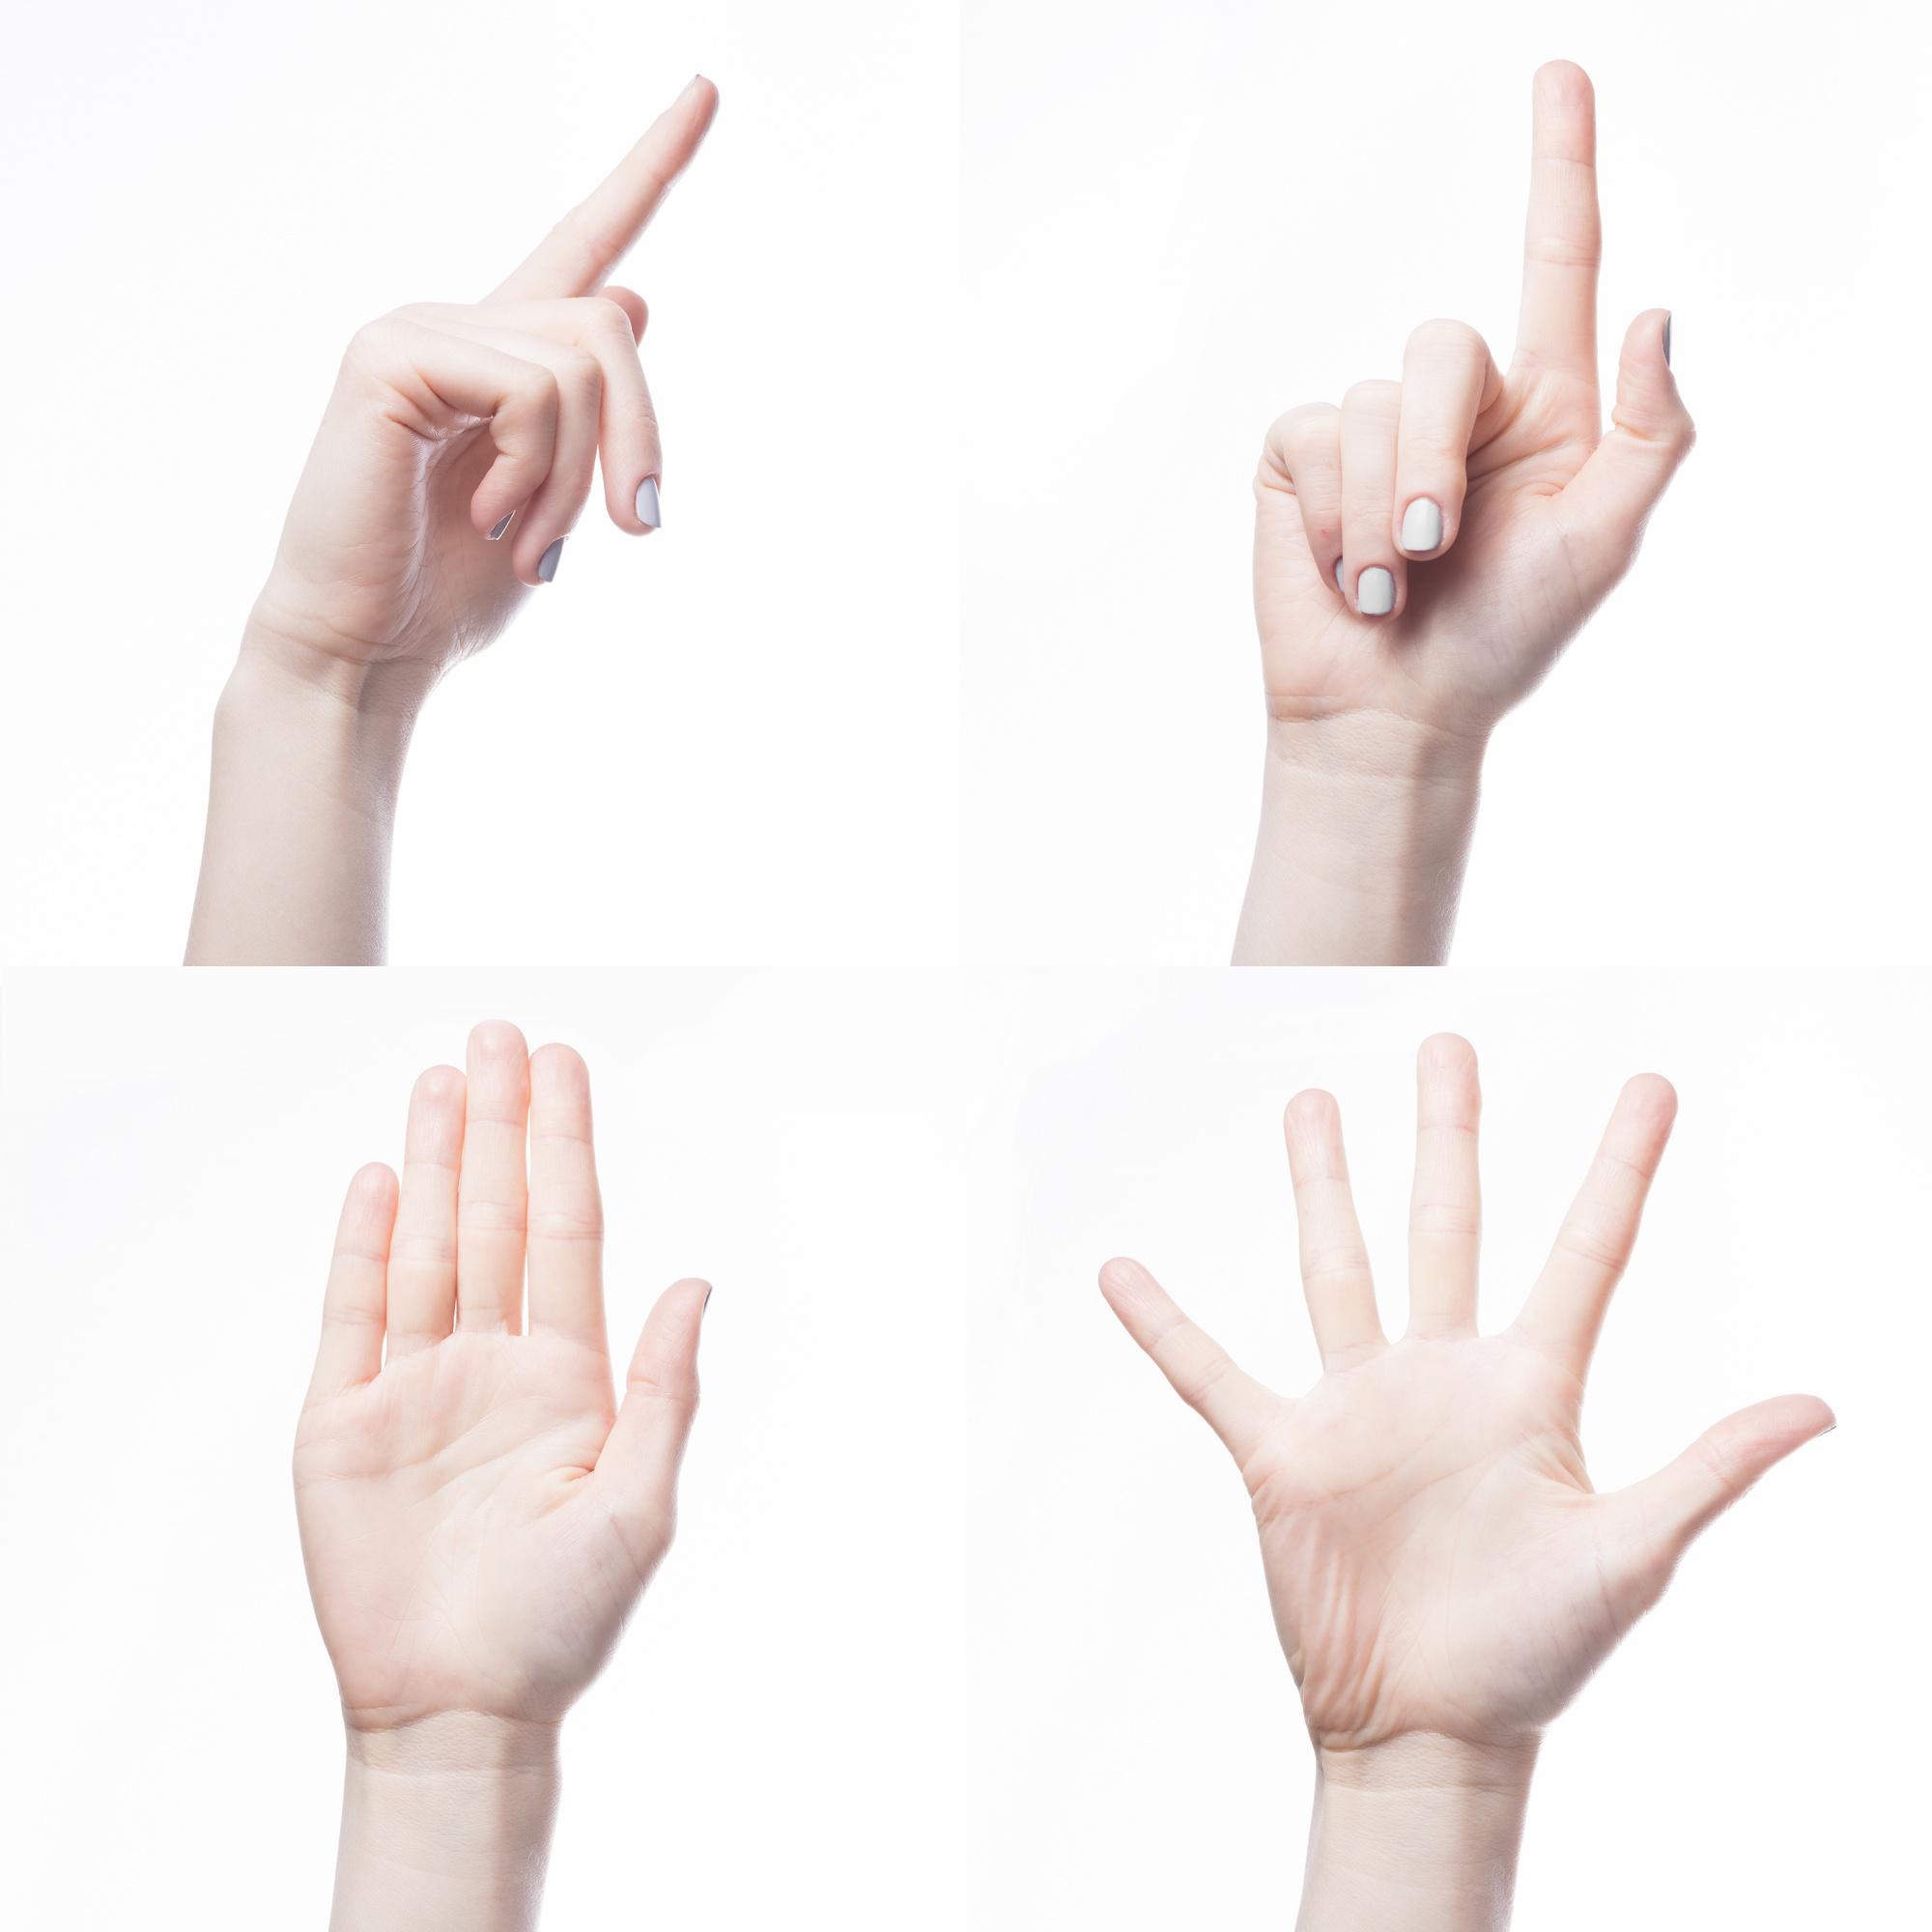 Crop hand gesturing on white background